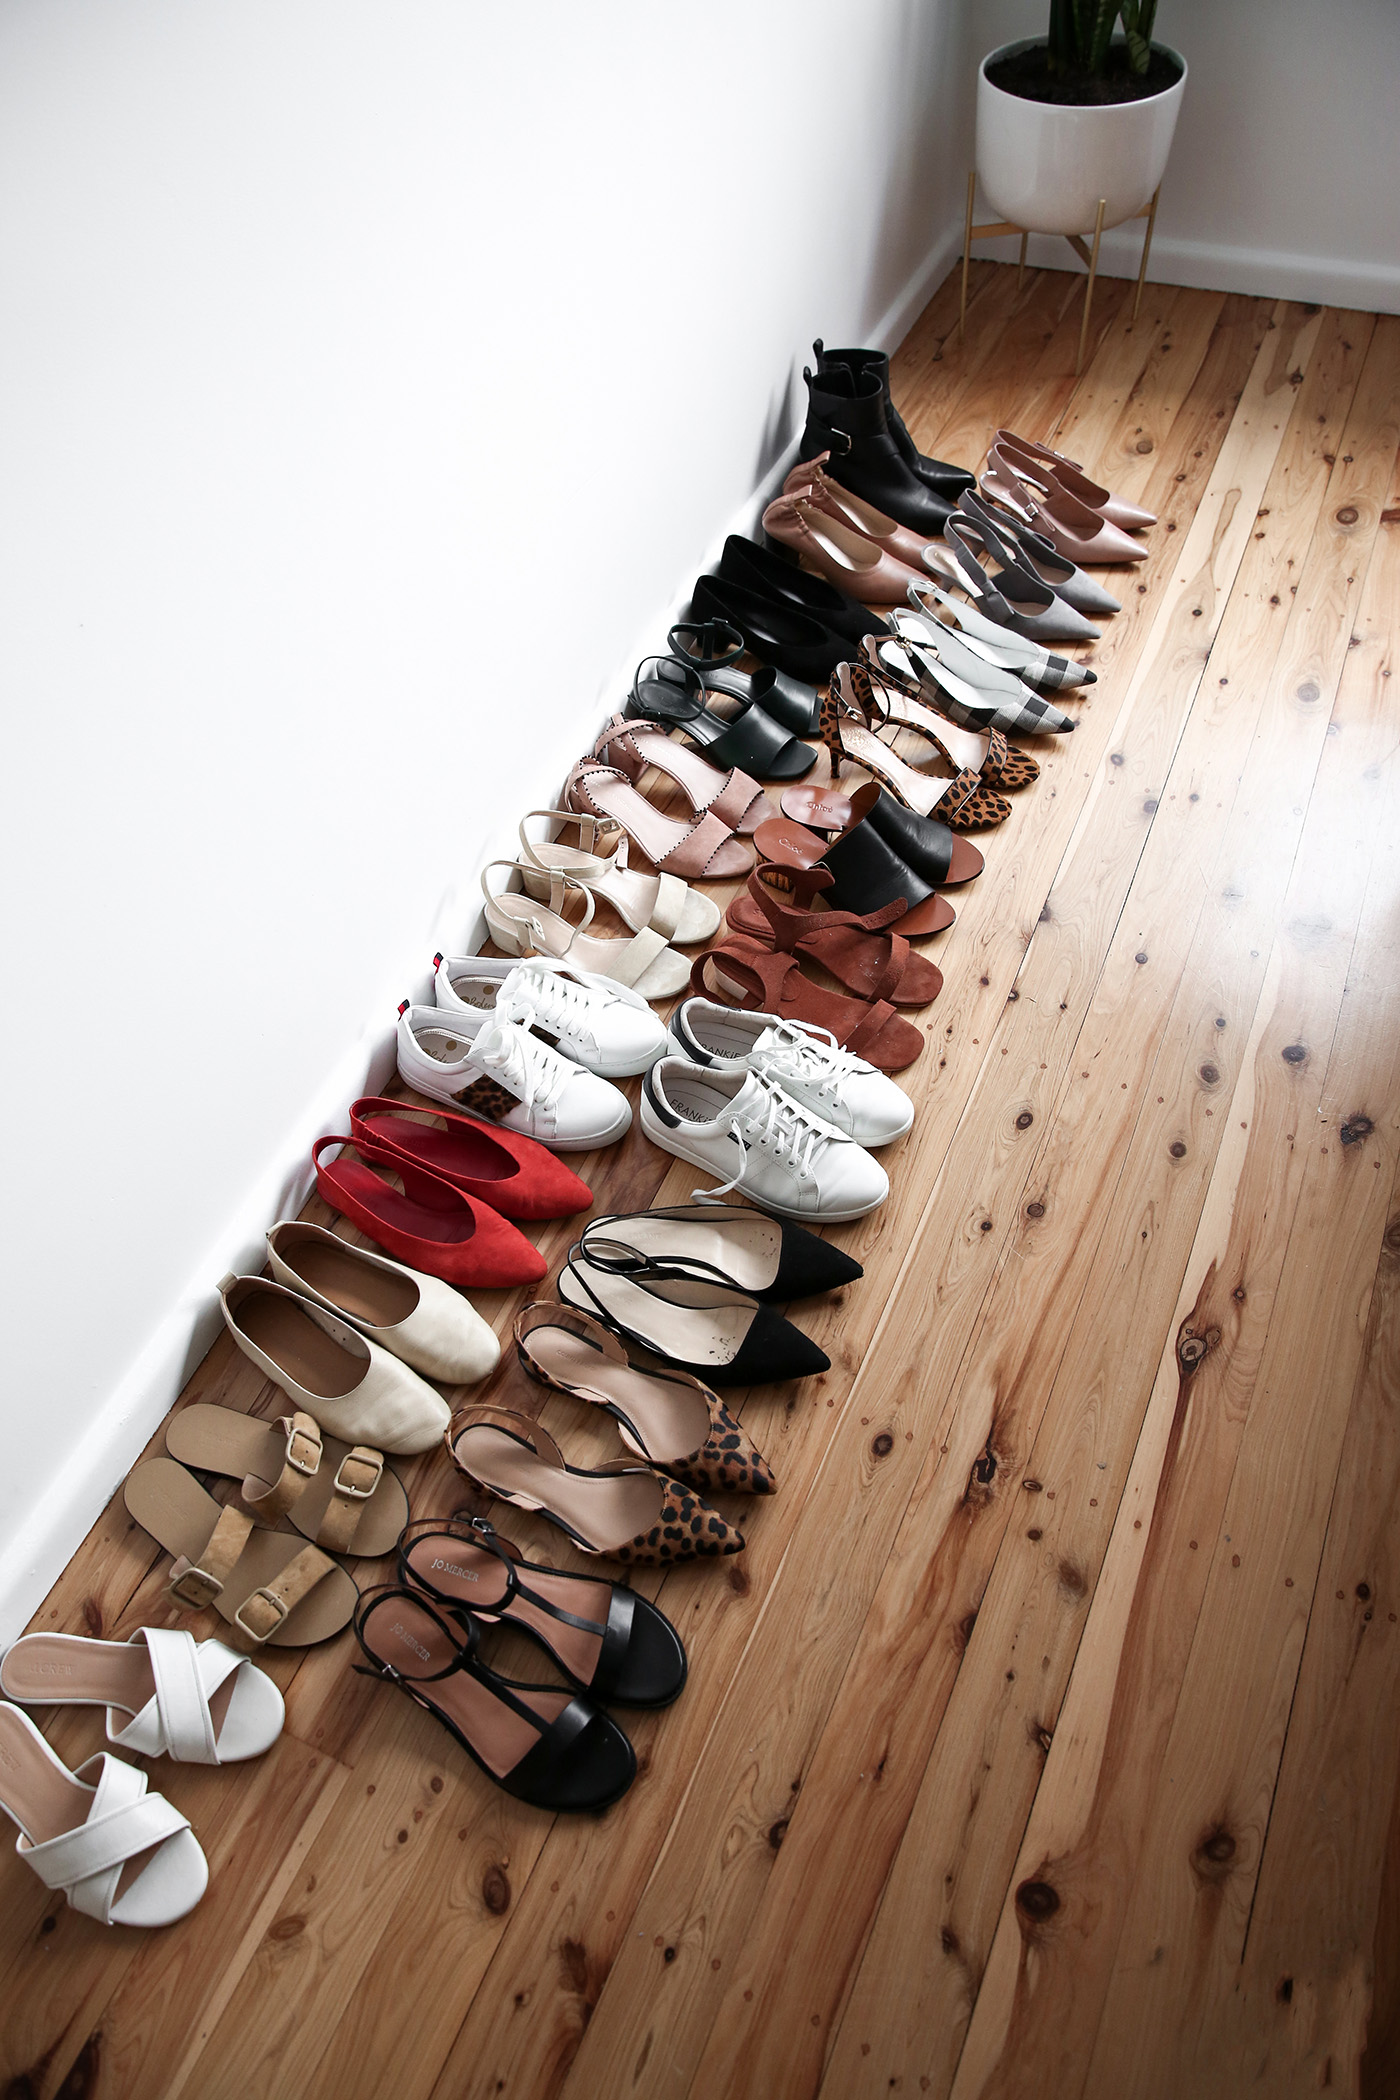 shoe-collection-2018_01.jpg